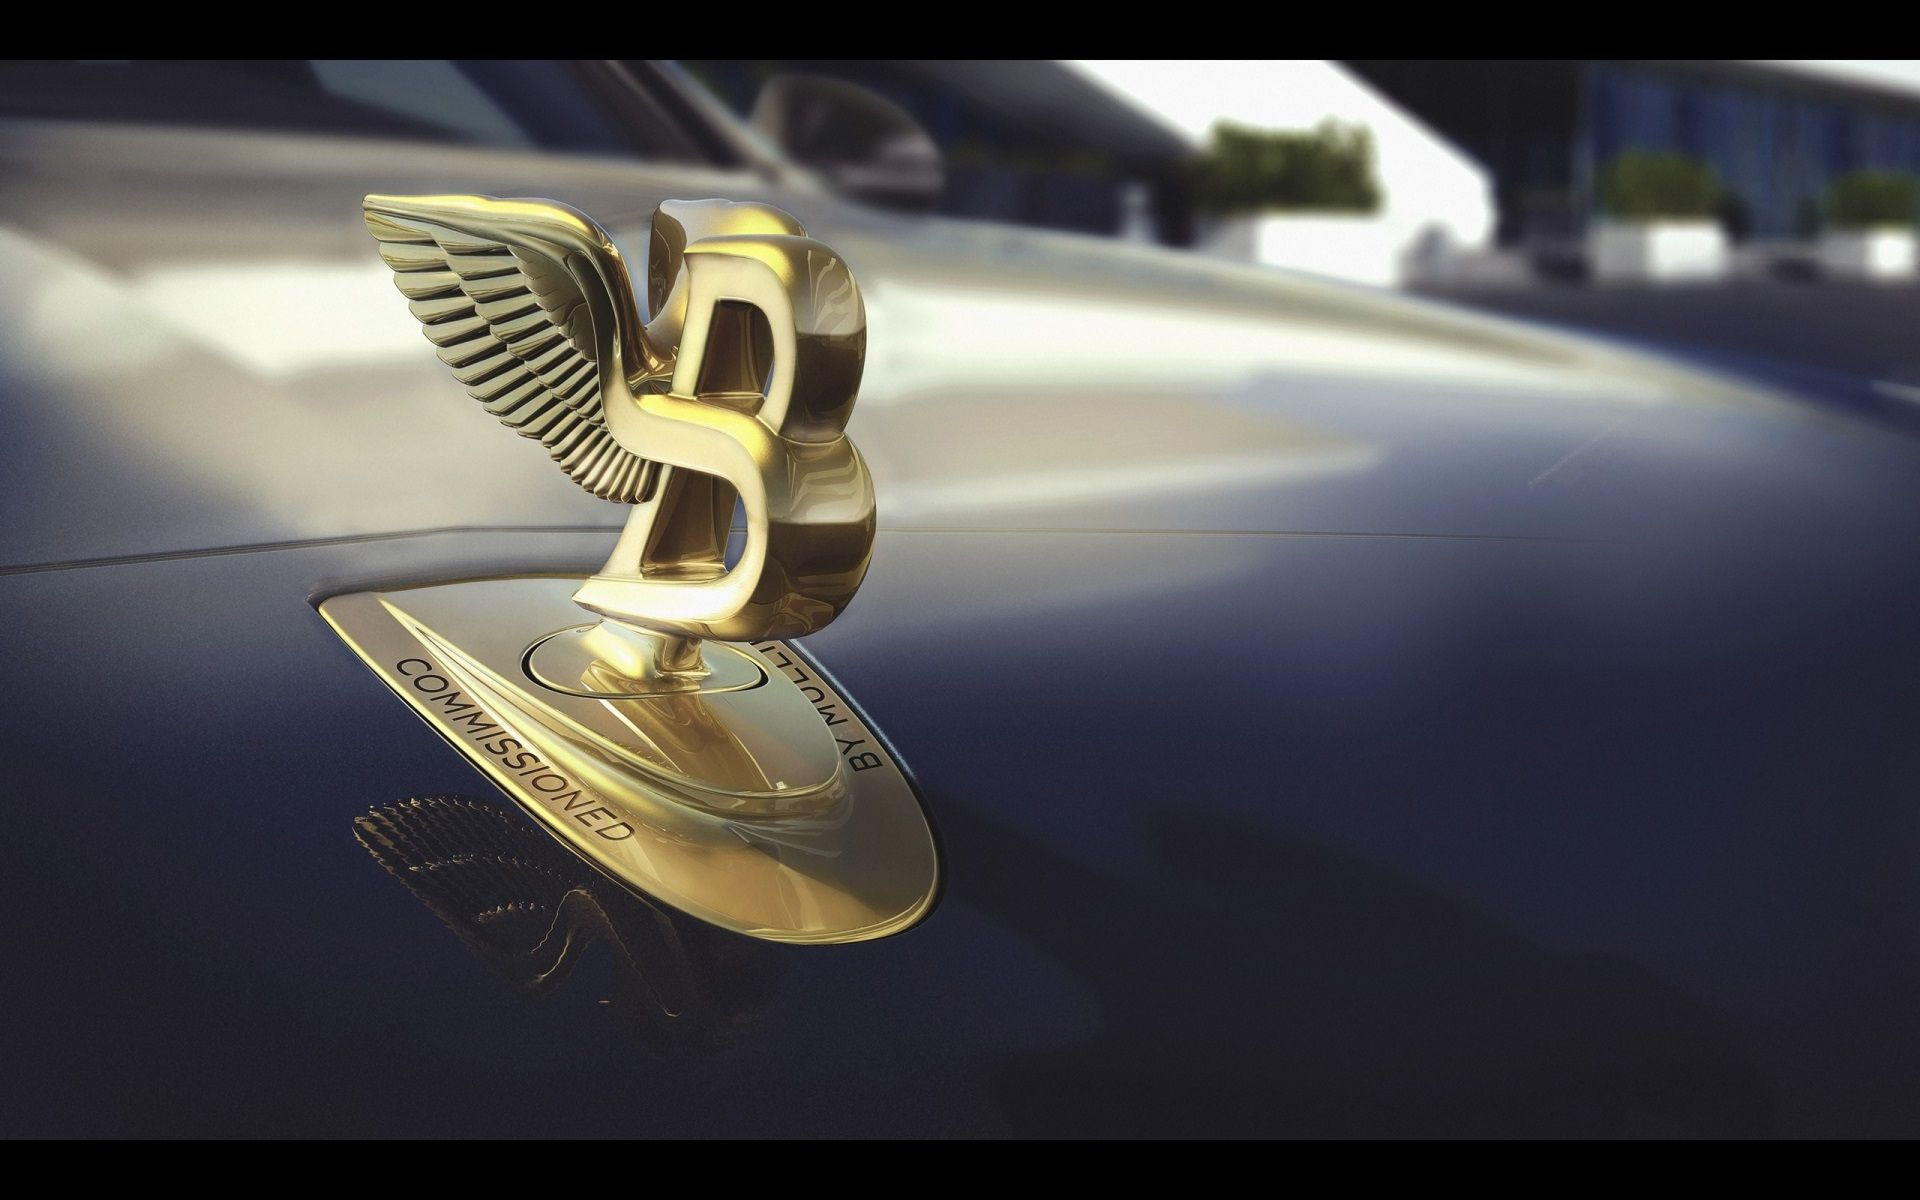 1920x1200 Bentley Wallpaper Download For Pc Wallpapers And